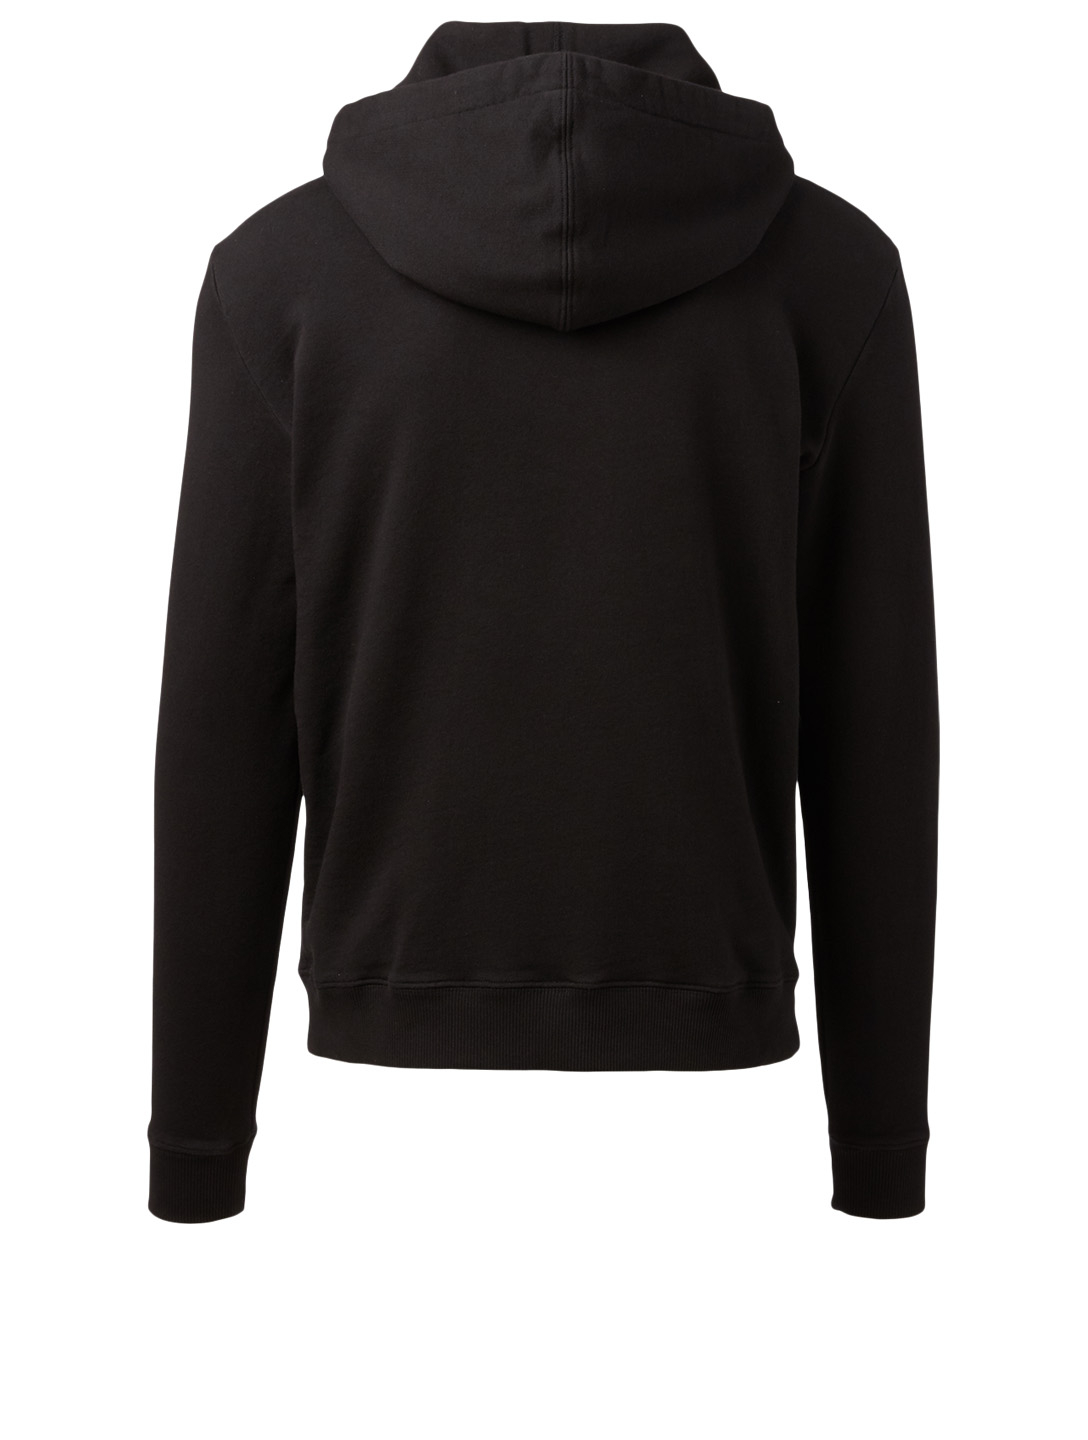 SAINT LAURENT Cotton Logo Hoodie Men's Black